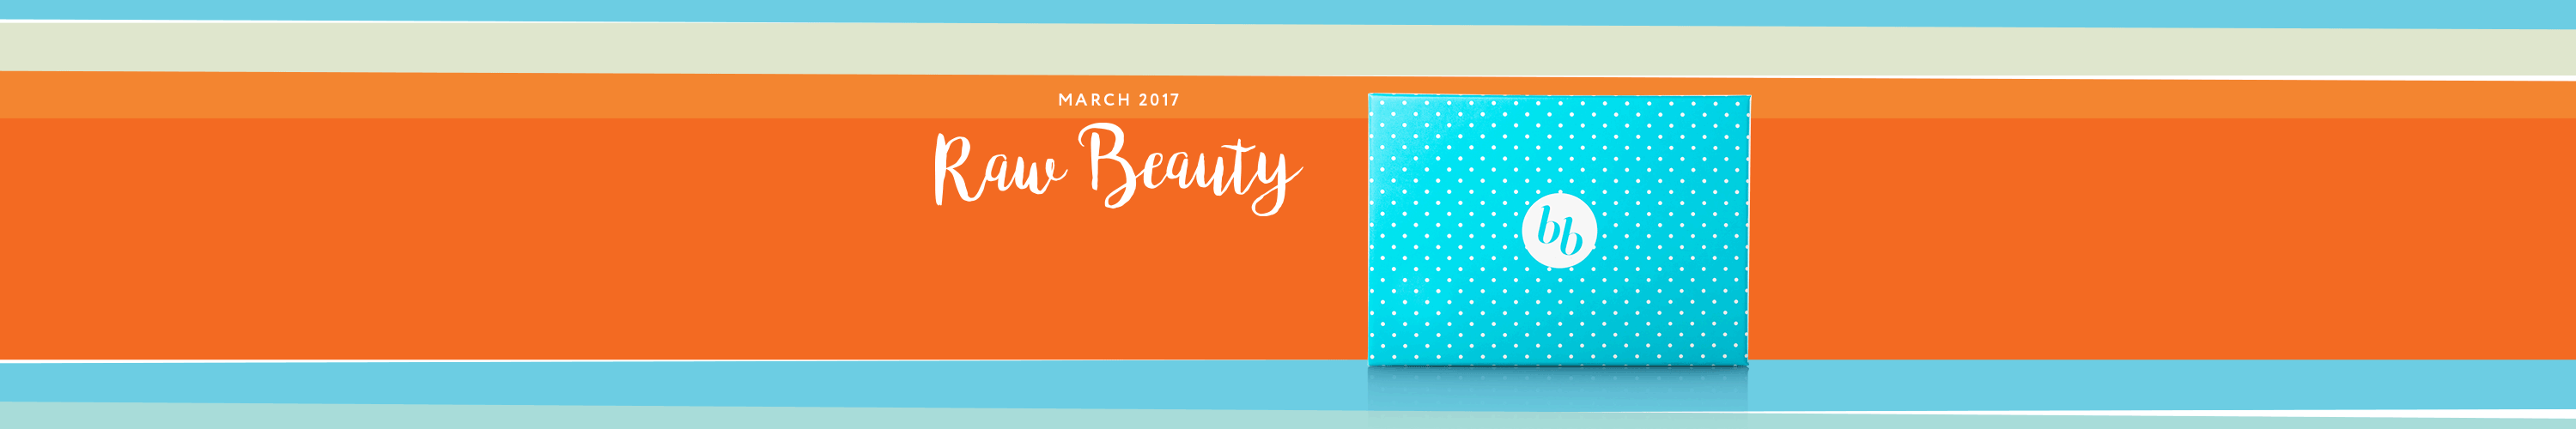 March bellabox